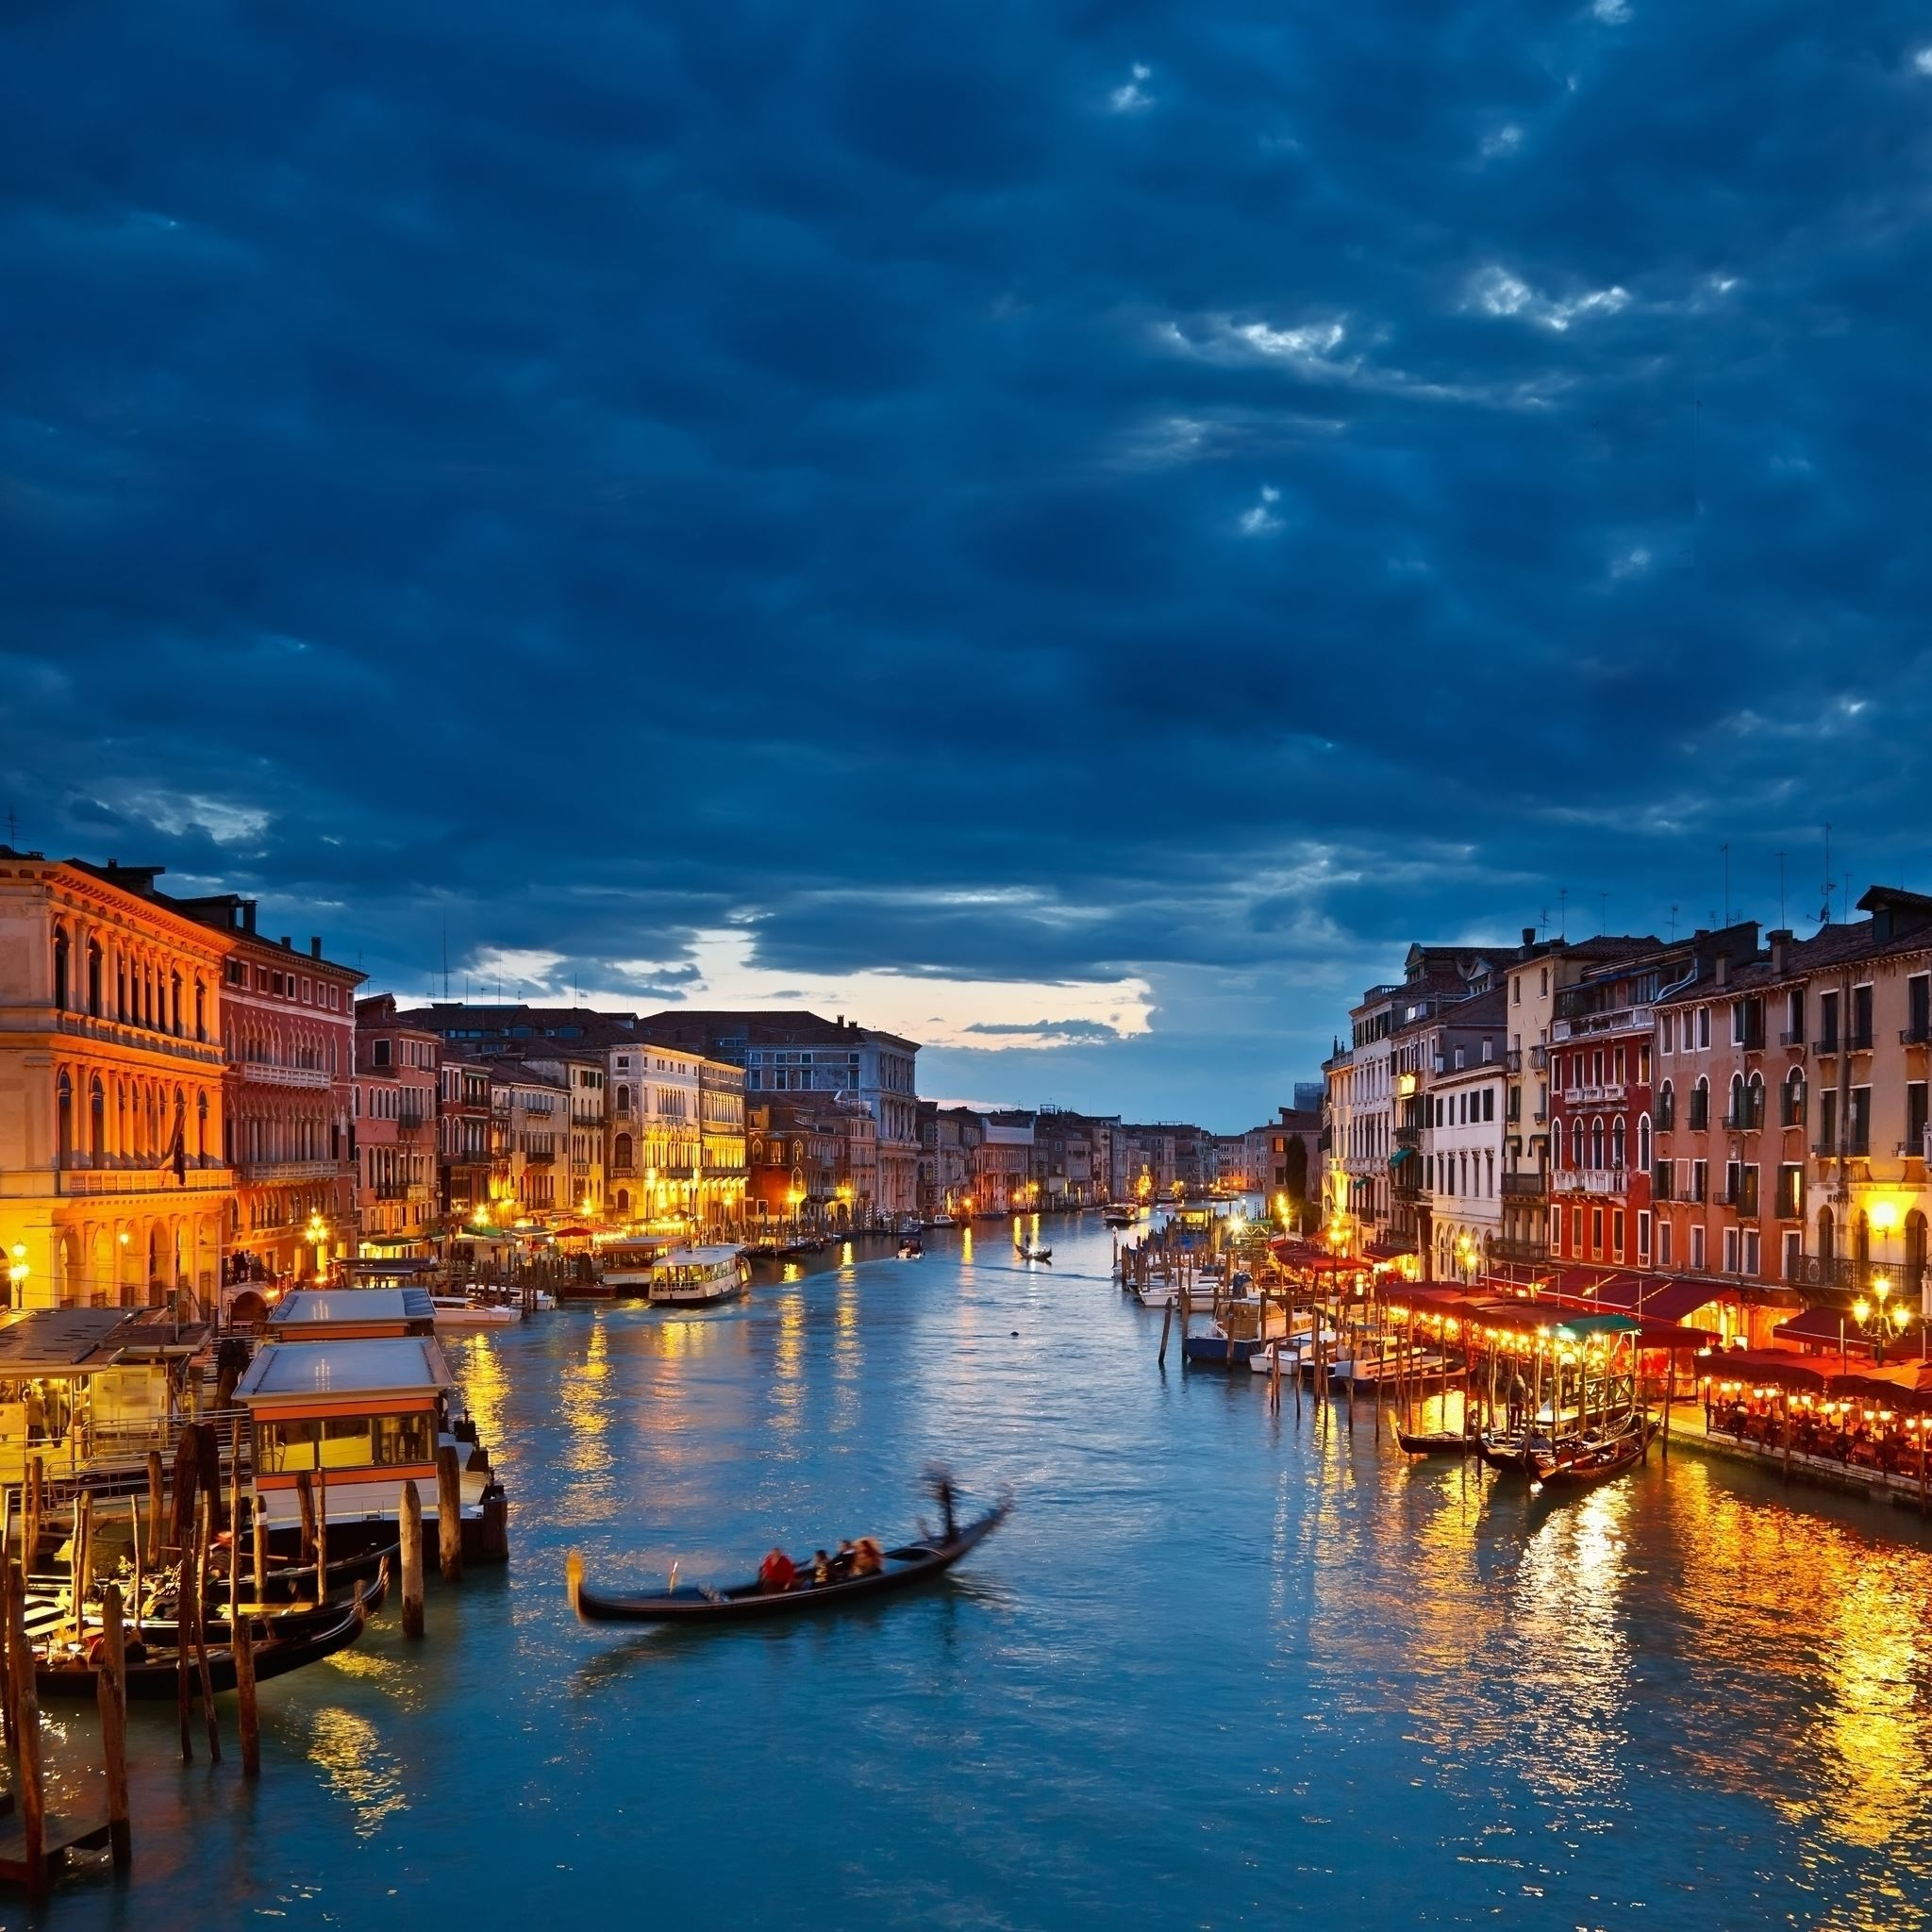 Night In Venice Ipad Air Wallpapers Free Download